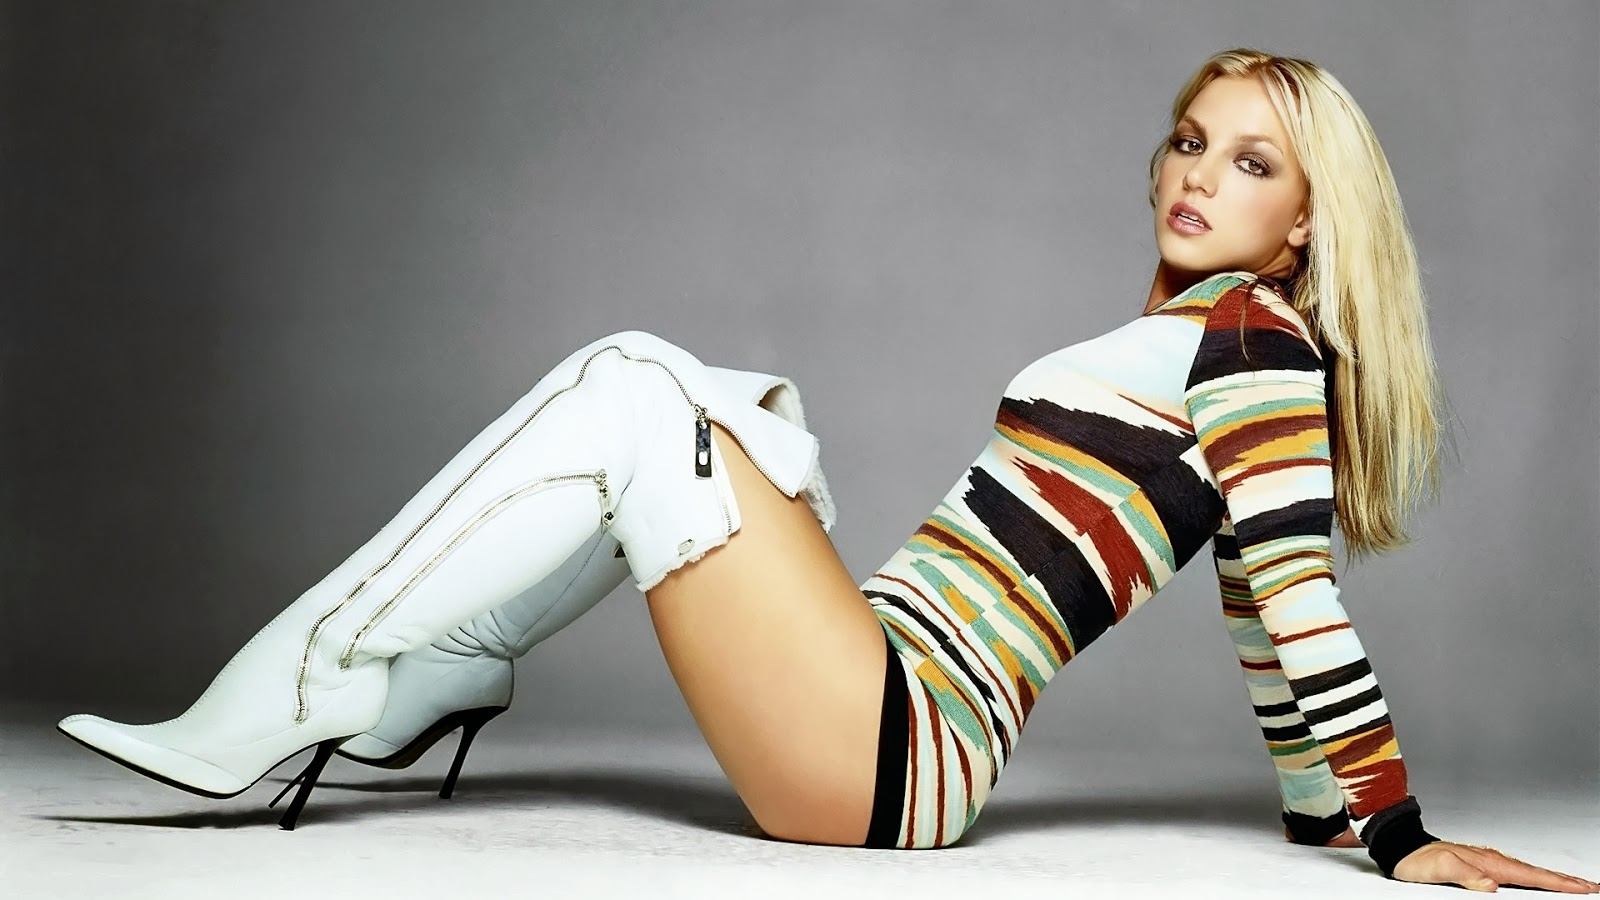 britney spears hd wallpapers collection - photo #34